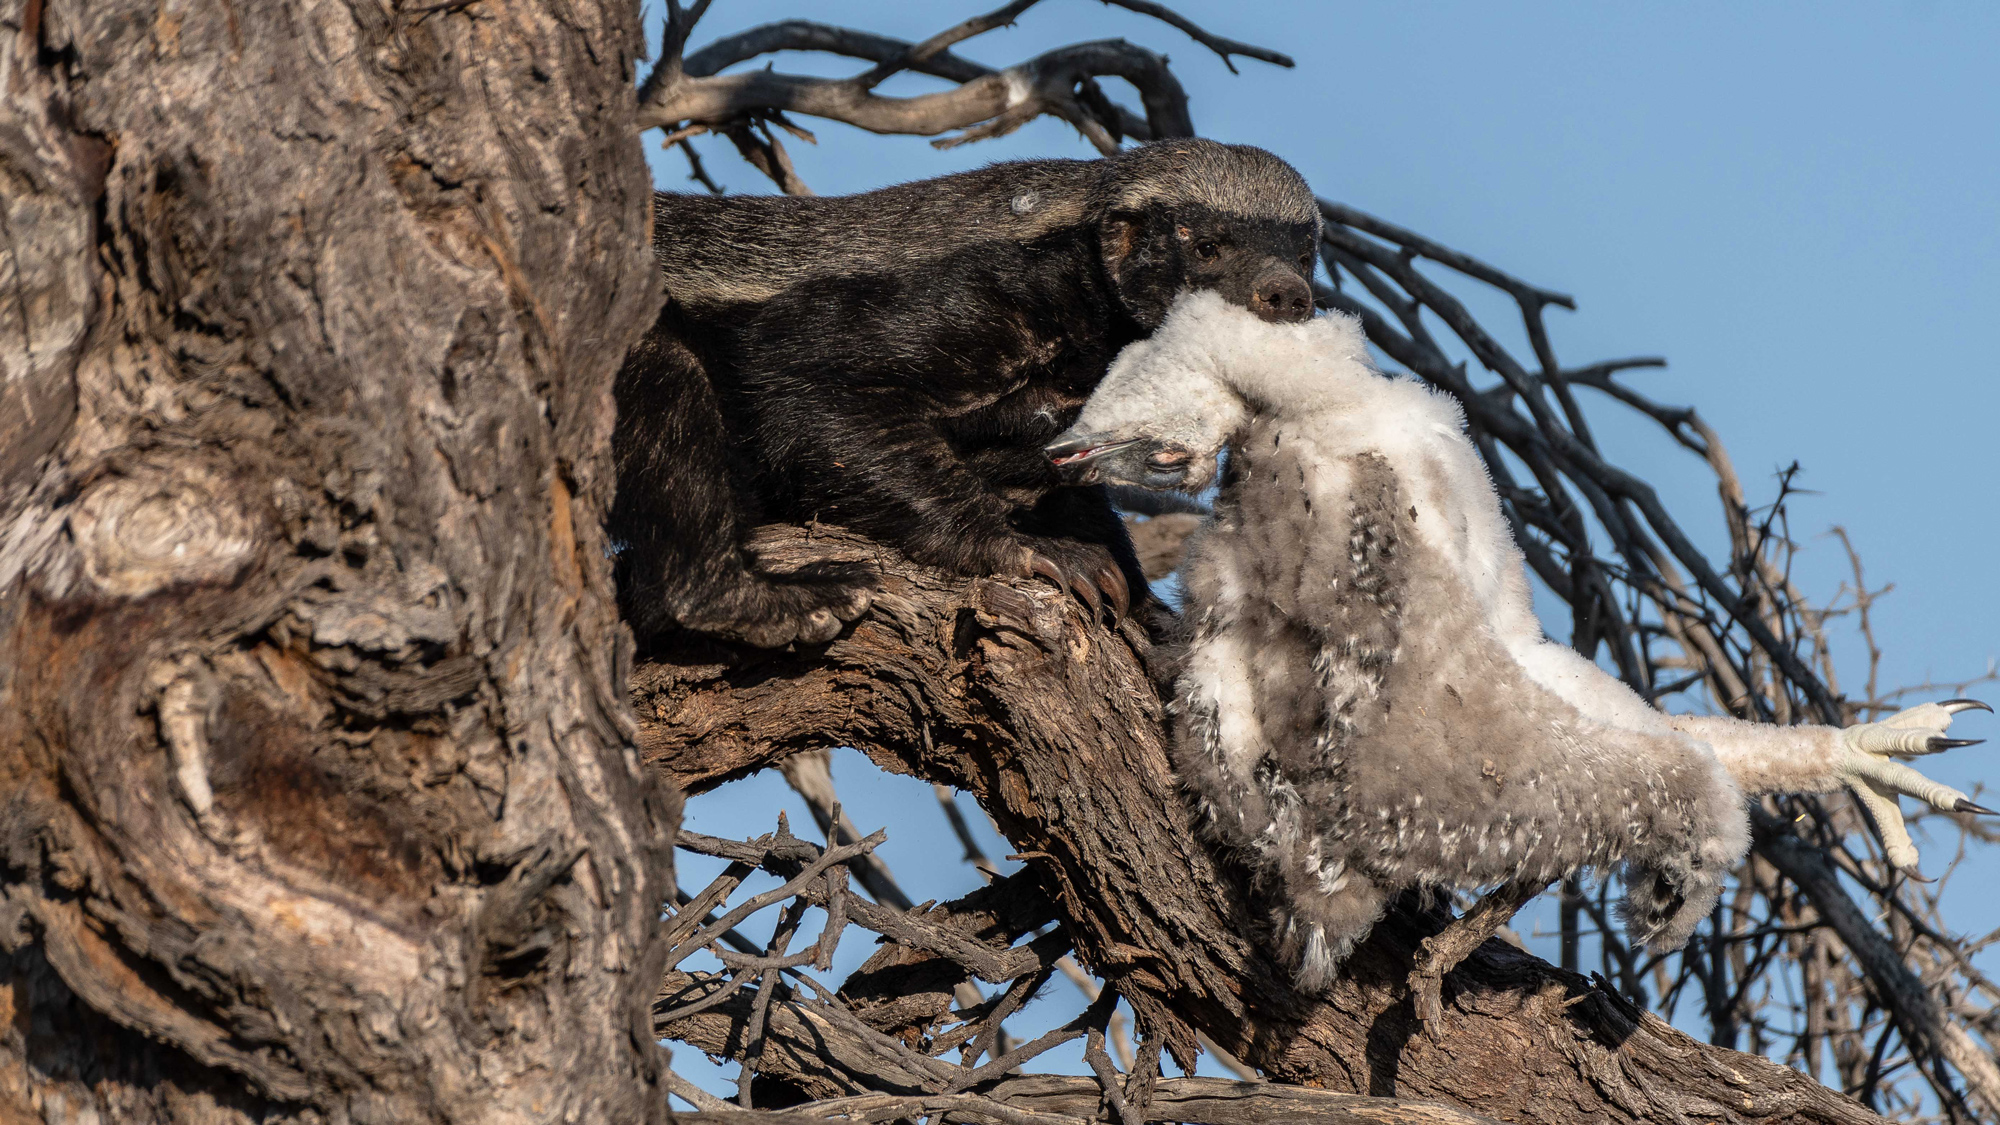 A honey badger snatches a martial eagle chick from a nest in the Kgalagadi Transfontier Park